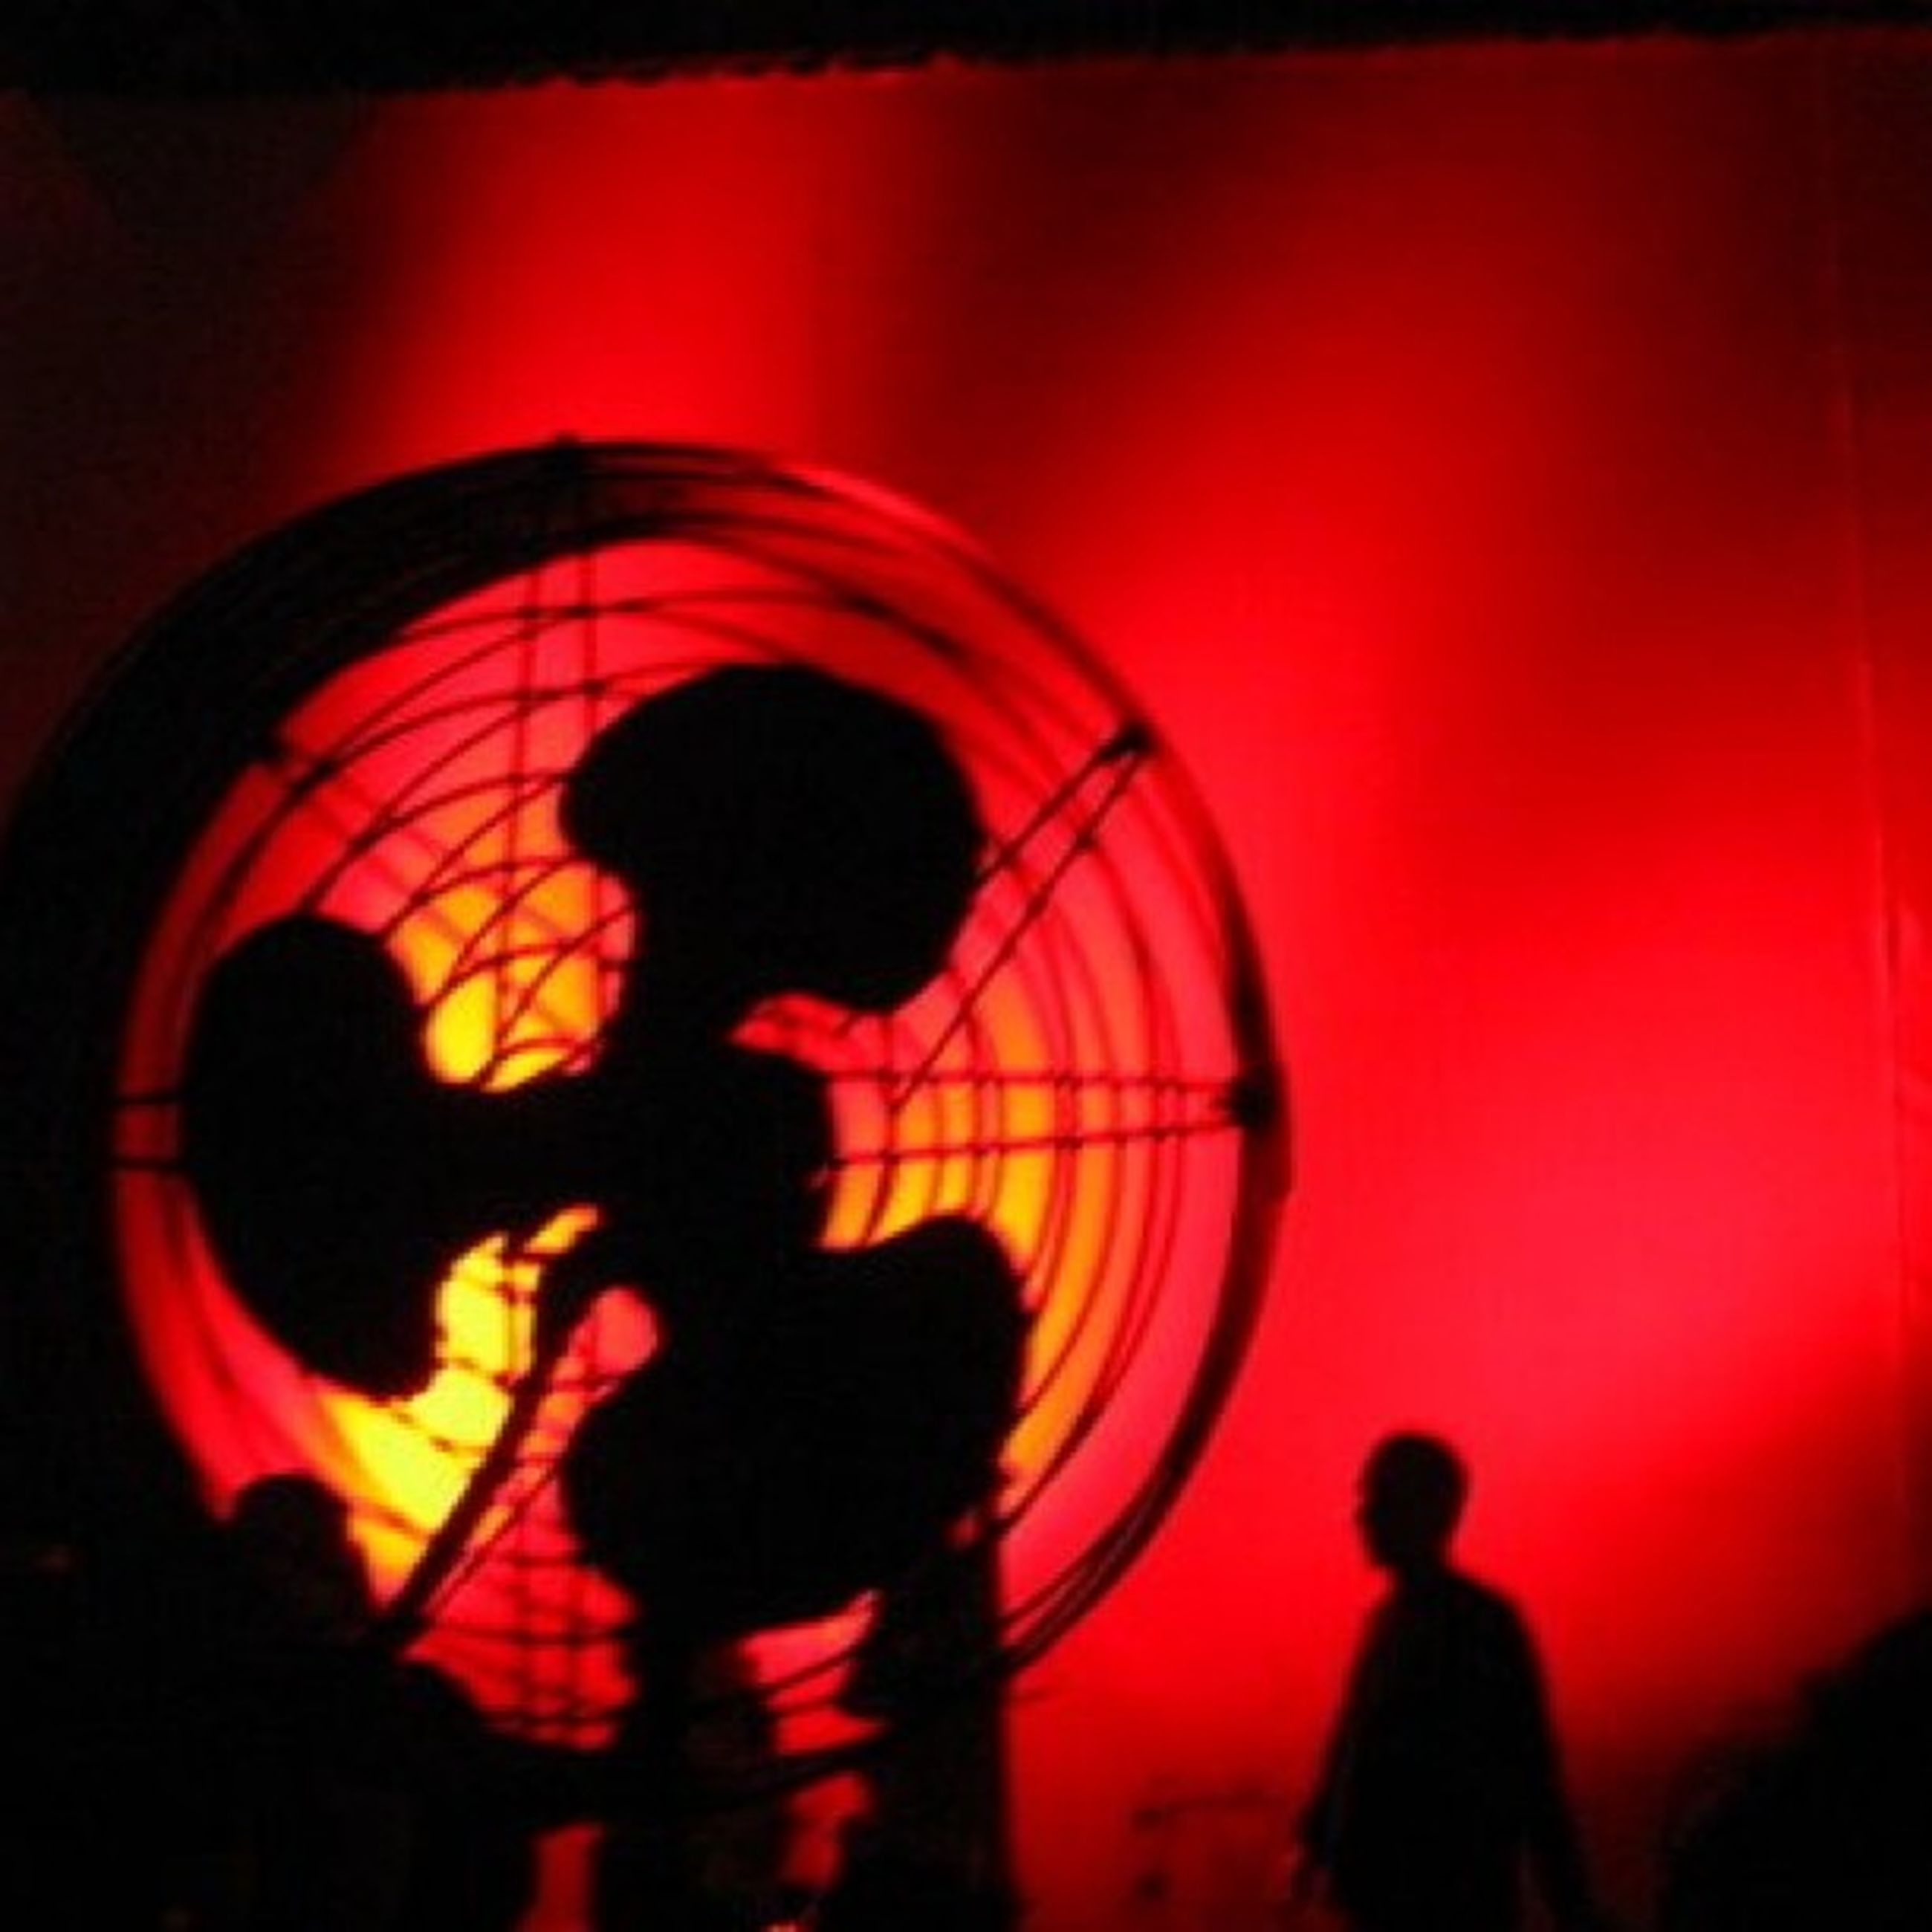 leisure activity, lifestyles, men, illuminated, arts culture and entertainment, person, silhouette, red, indoors, night, standing, enjoyment, circle, fun, rear view, walking, large group of people, orange color